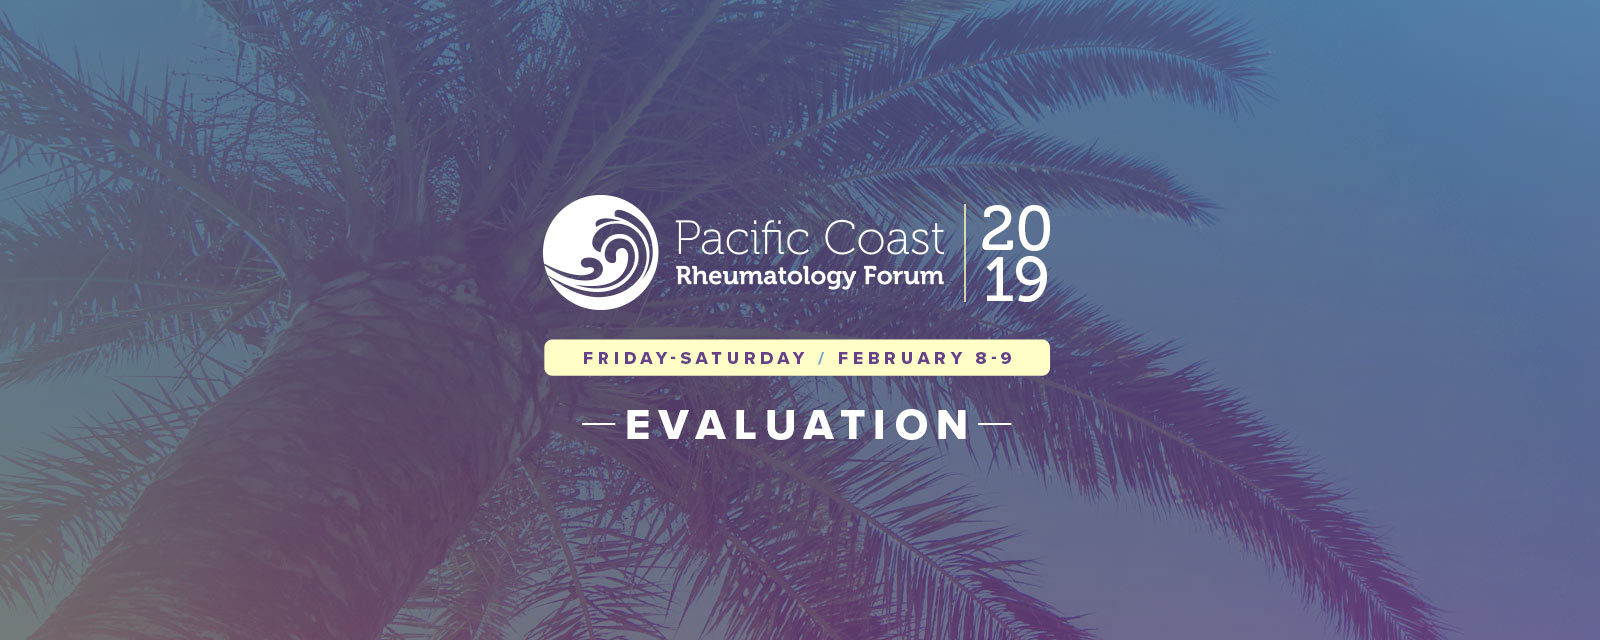 2019 Pacific Coast Rheumatology Forum Evaluation